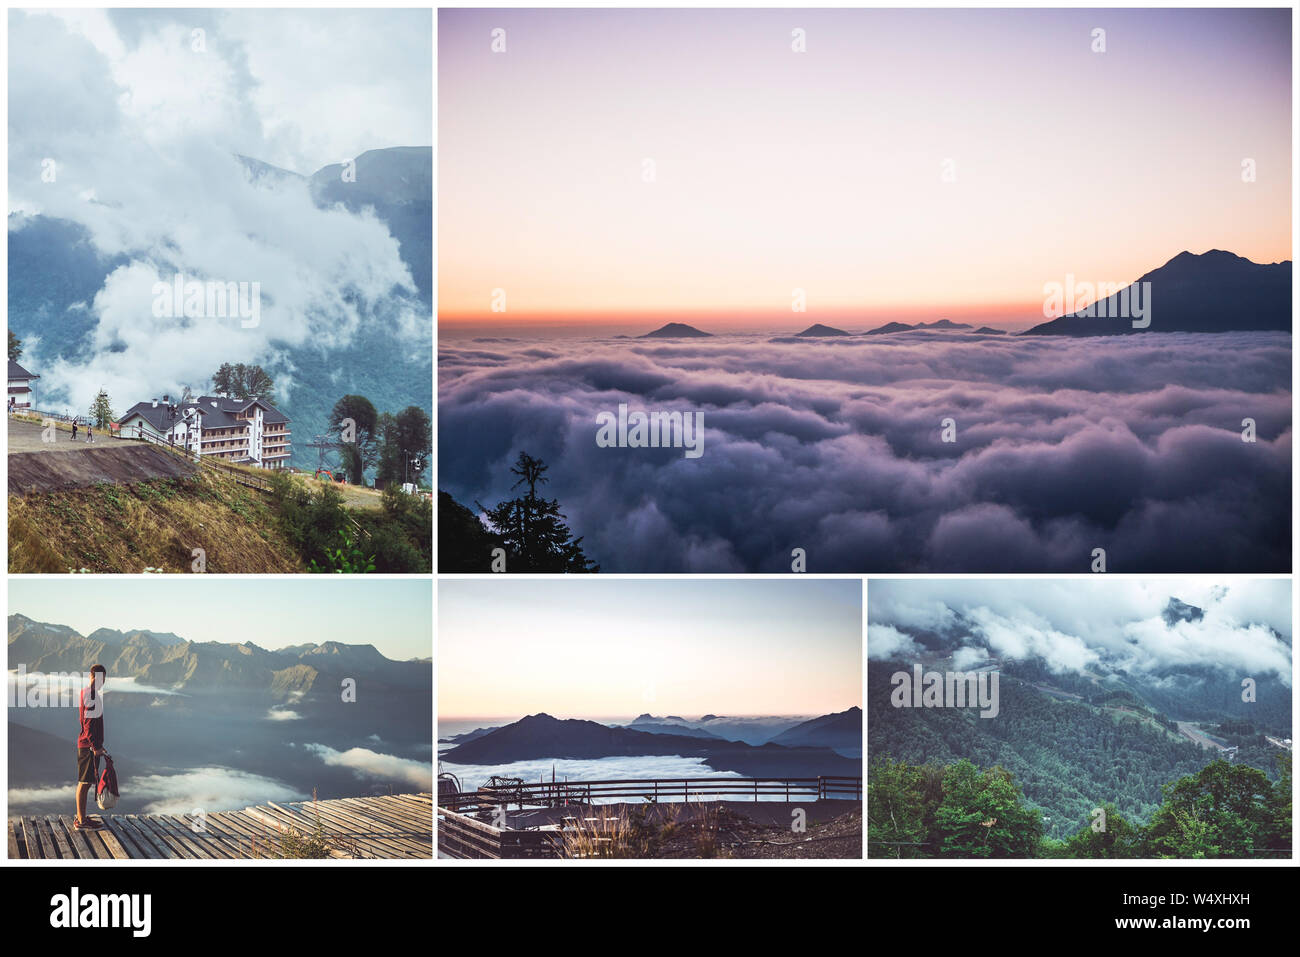 Collage Of Five Photos Of Mountain Aerial Landscapes Scenery Stock Photo Alamy